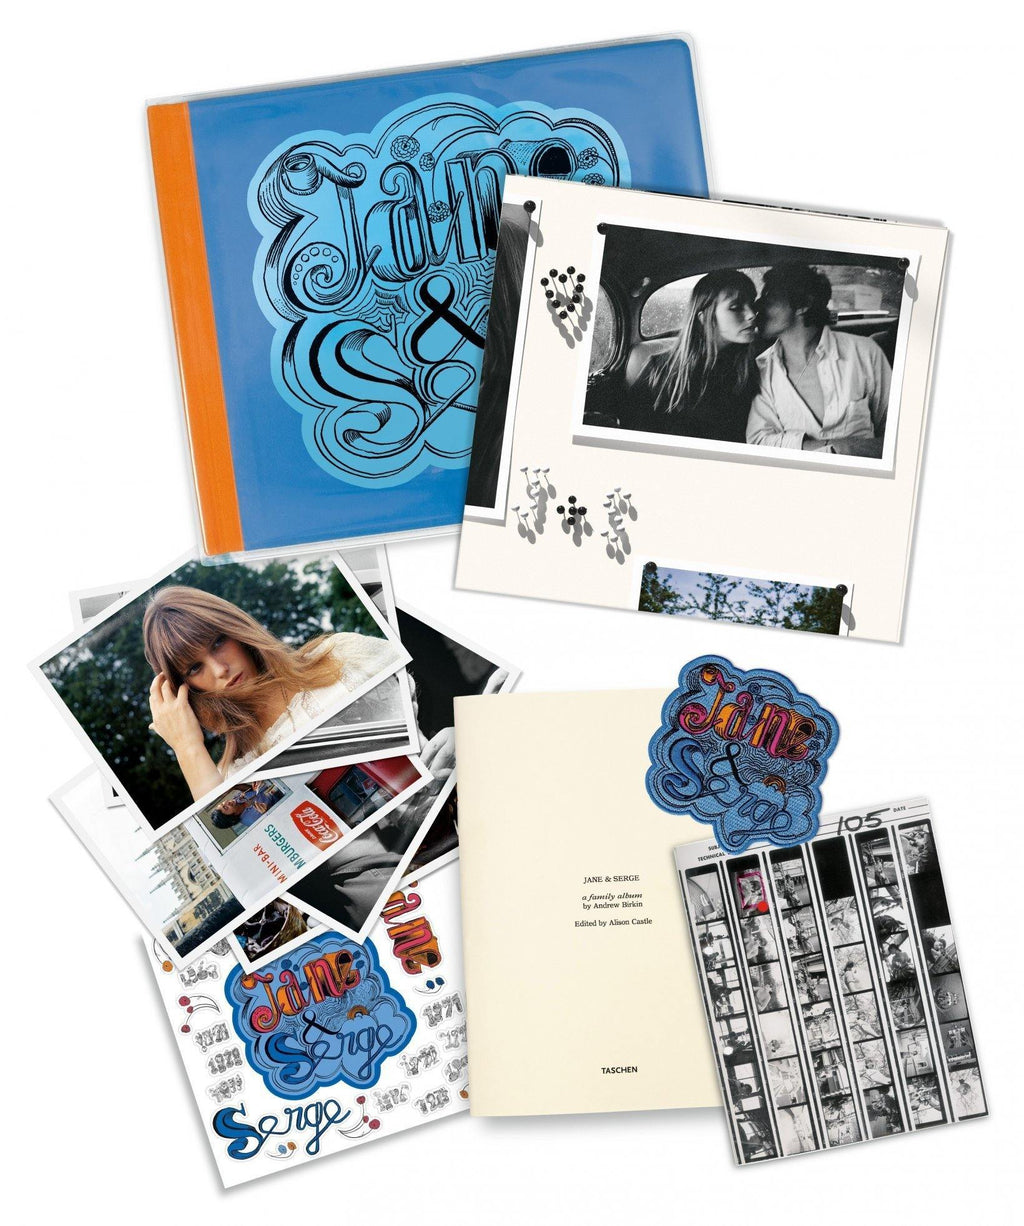 Jane, Serge, A Family Album, Serge Gainsbourg, British, actress, Jane Birkin, book, taschen, La Maison Rebelle, gift shop, art gallery, los angeles